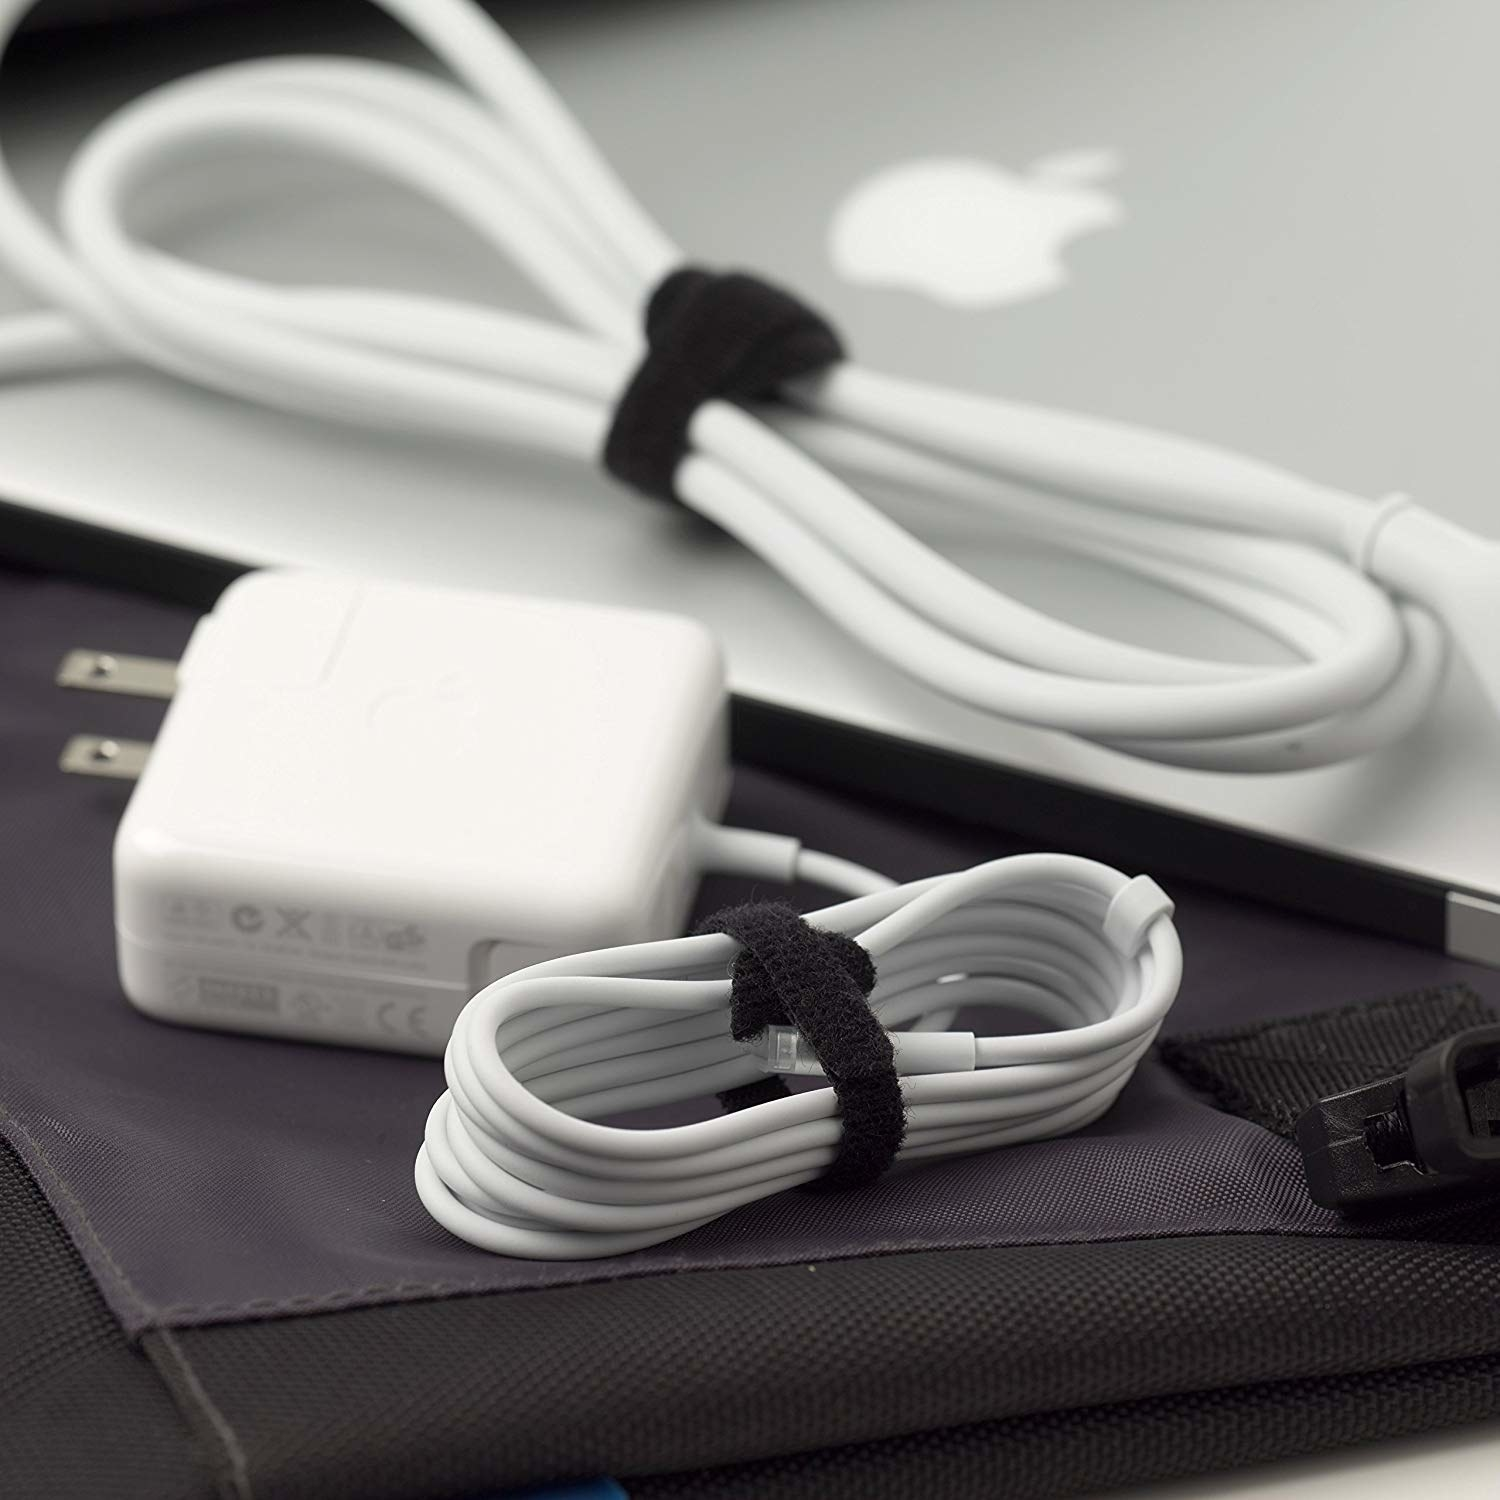 Velcro cord ties keeping charging wires neatly organized